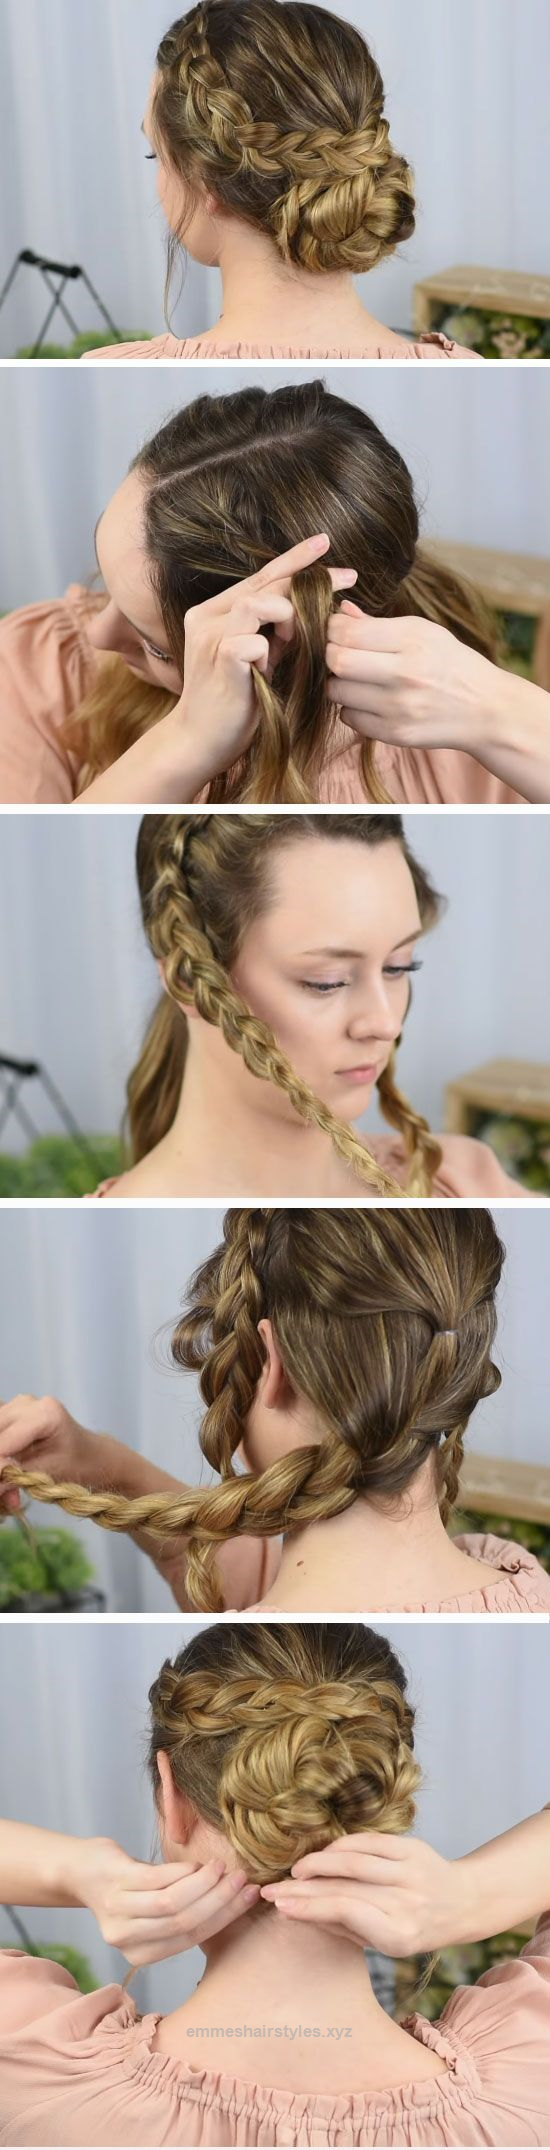 Cool dutch braided up do quick diy prom hairstyles for medium hair and easy homecoming long the post also best hairstyle diamond shaped face male shag rh pinterest